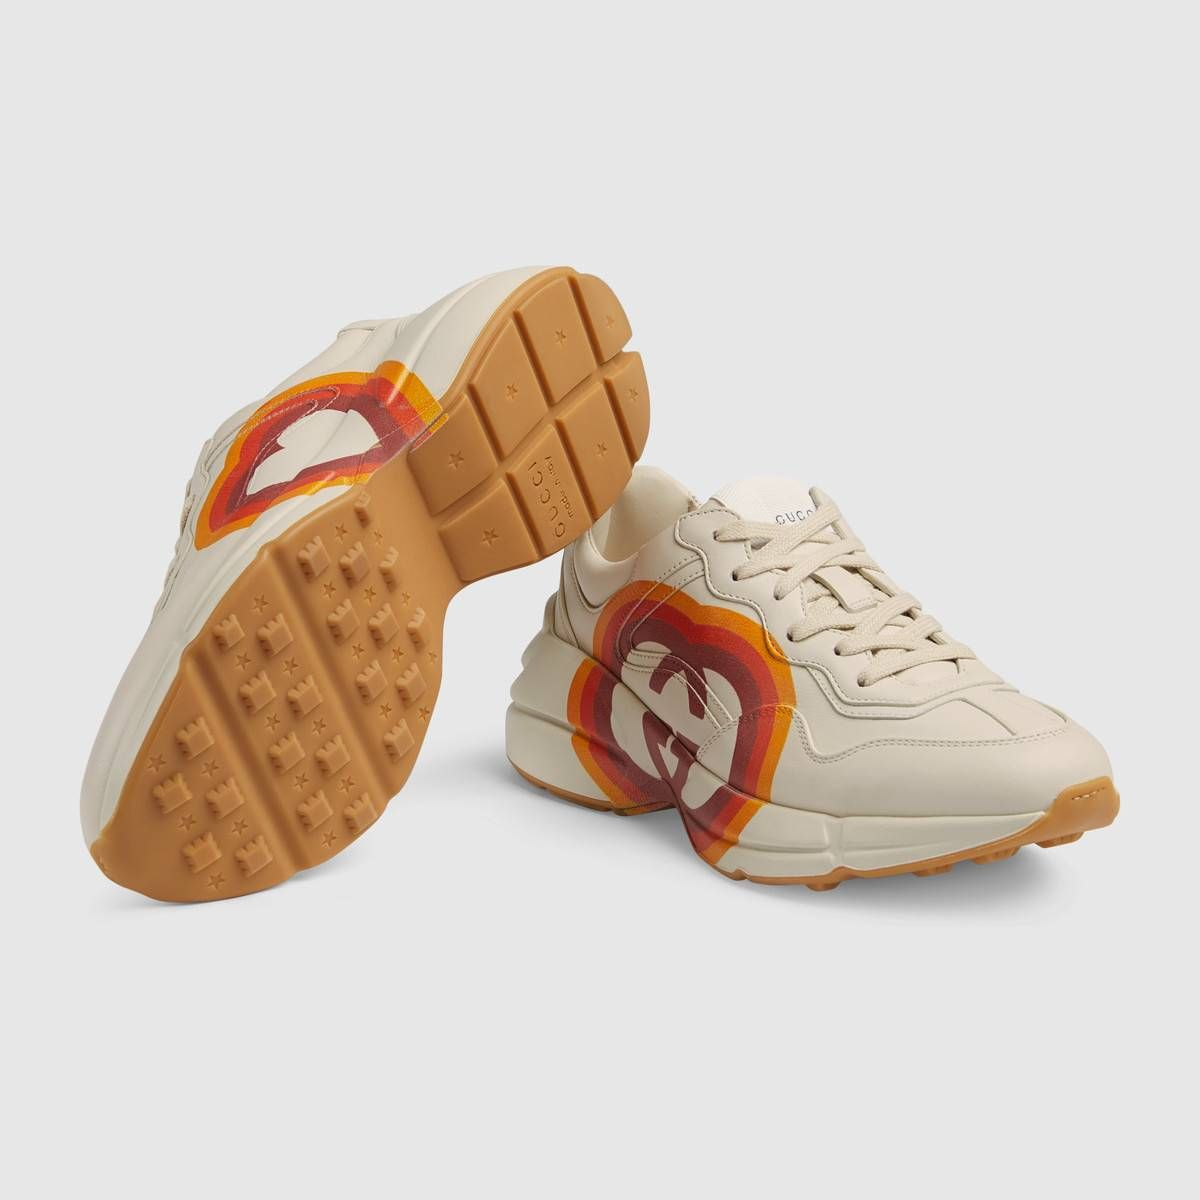 04dc356ea7a Shop the Rhyton sneaker with Interlocking G and heart by Gucci. Made up of  influences